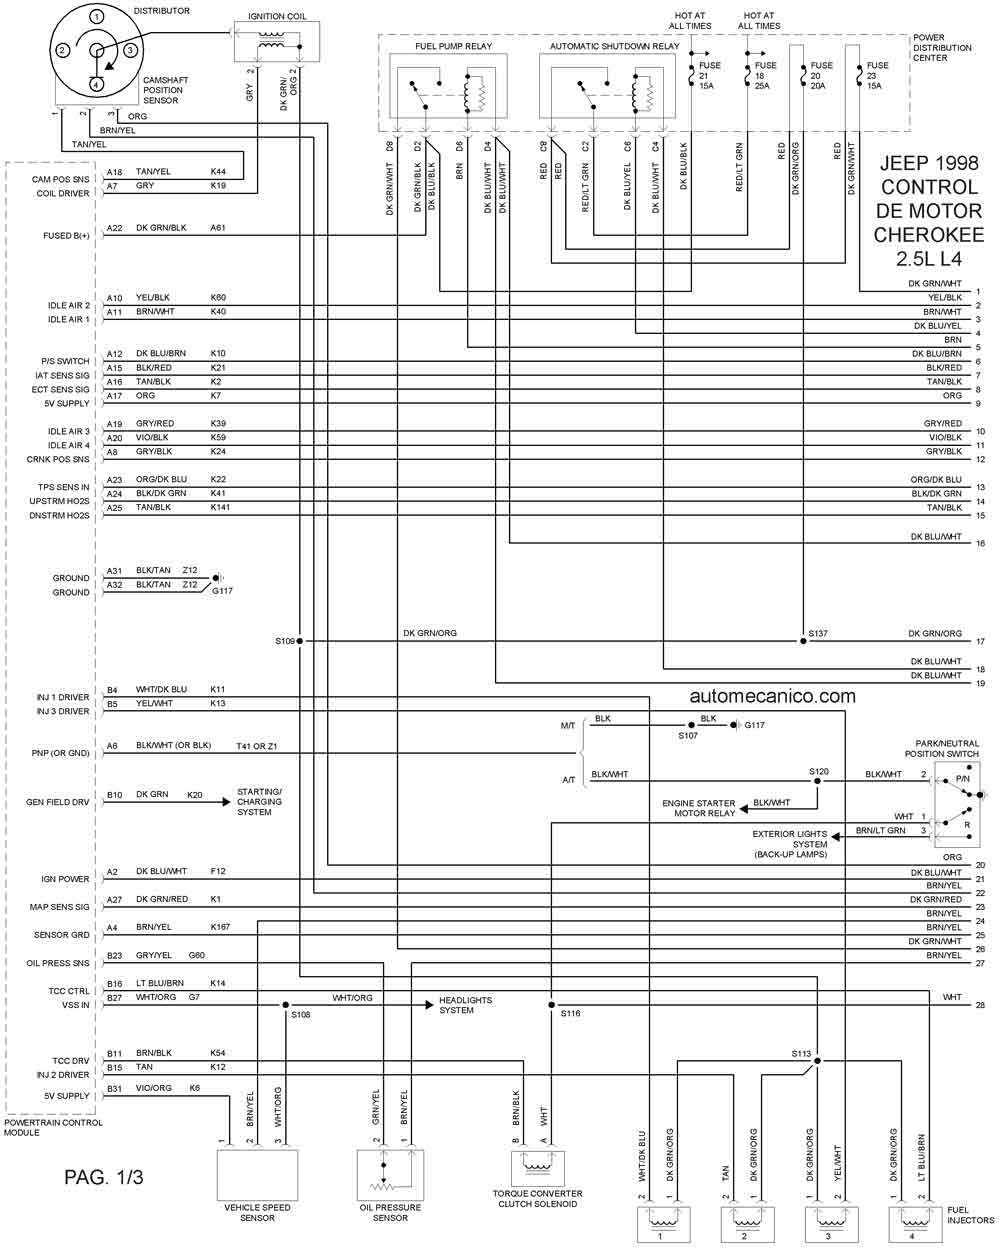 1996 Jeep Grand Cherokee Pcm Wiring Diagram Jeep 1998 Diagramas Esquemas Graphics Vehiculos